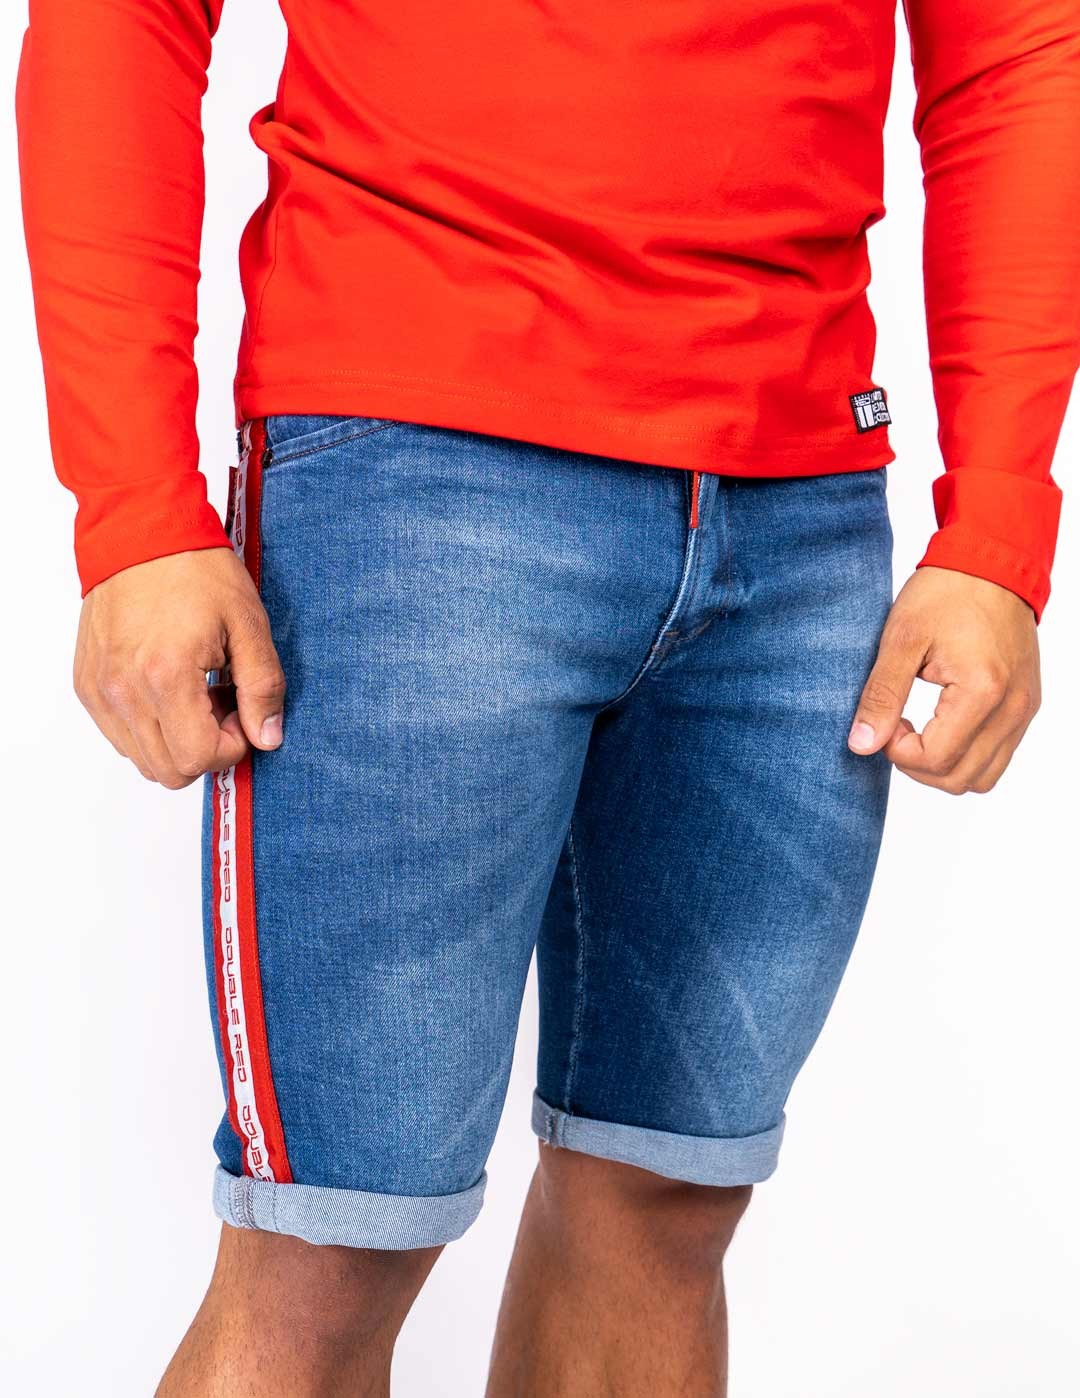 RED JEANS Shorts Blue